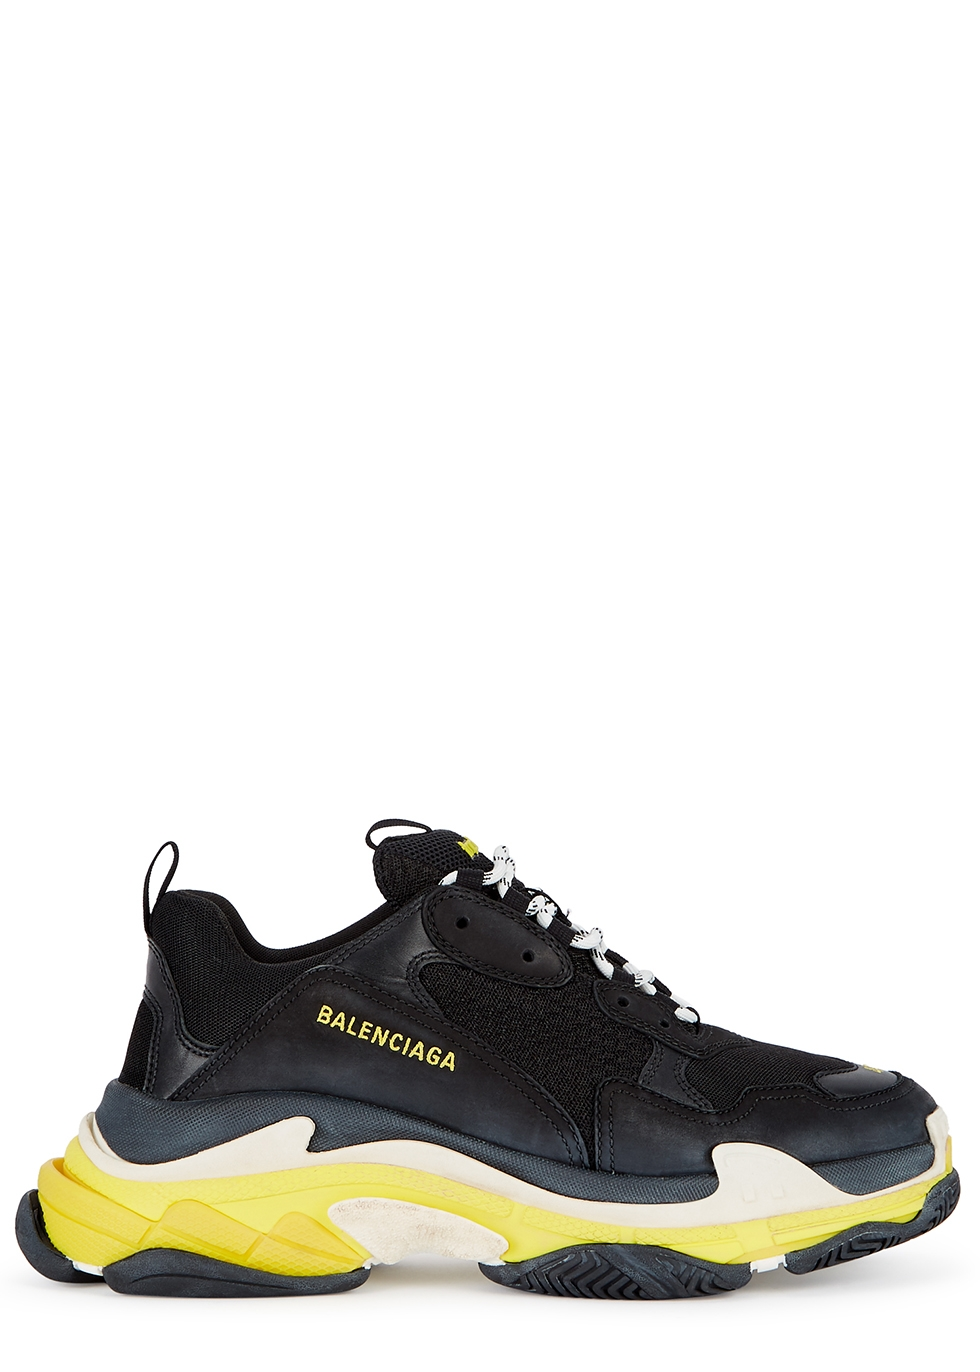 Balenciaga Triple S Made in China Difference Mount Mercy